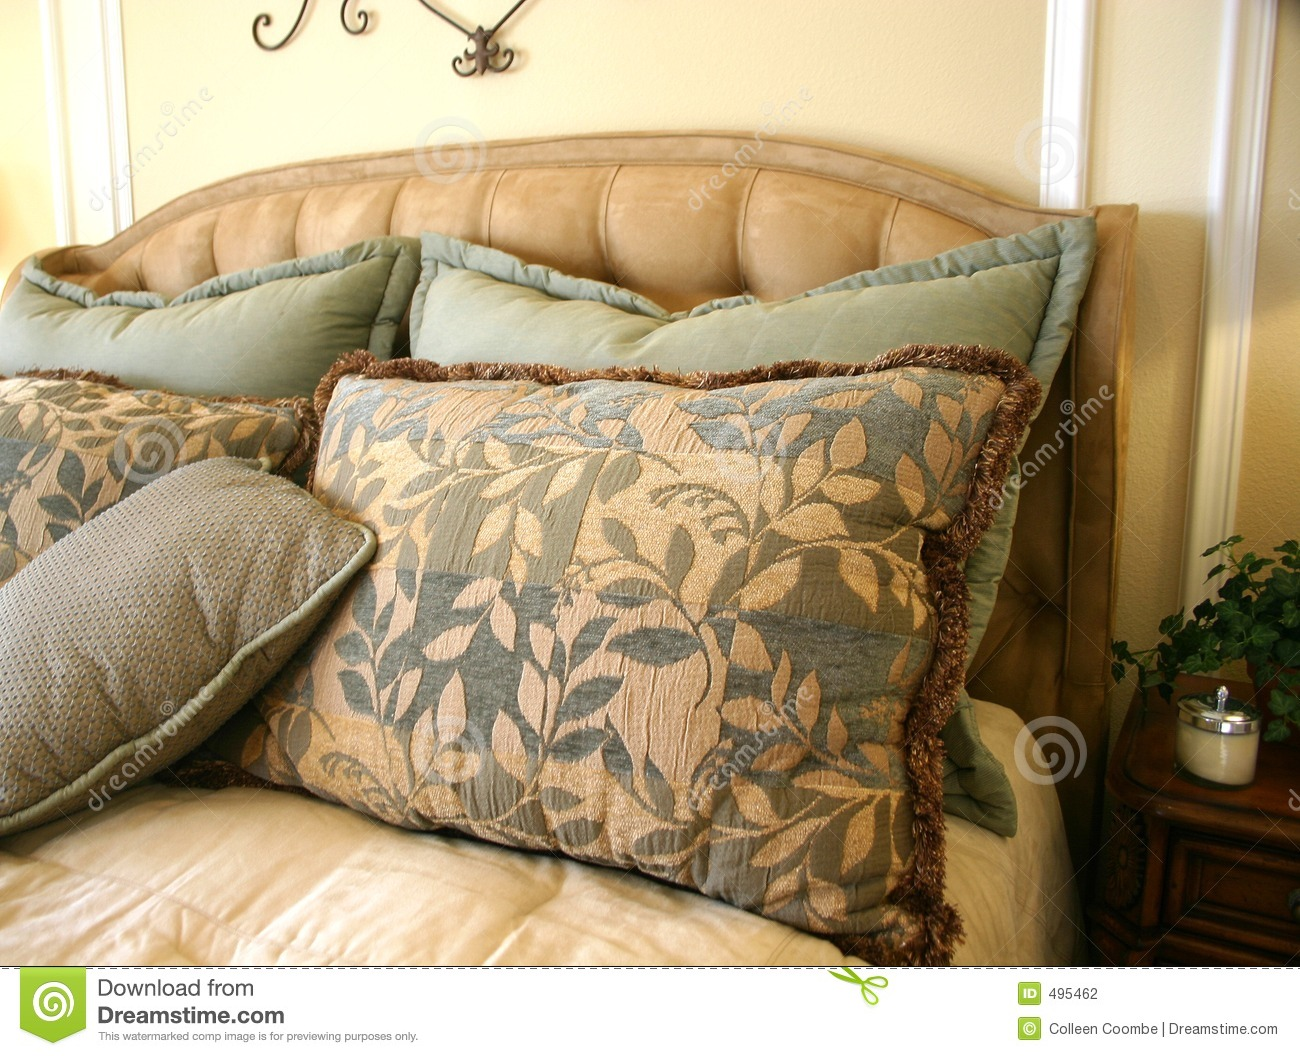 Beautiful Bed Pillows Stock Photography Image 495462